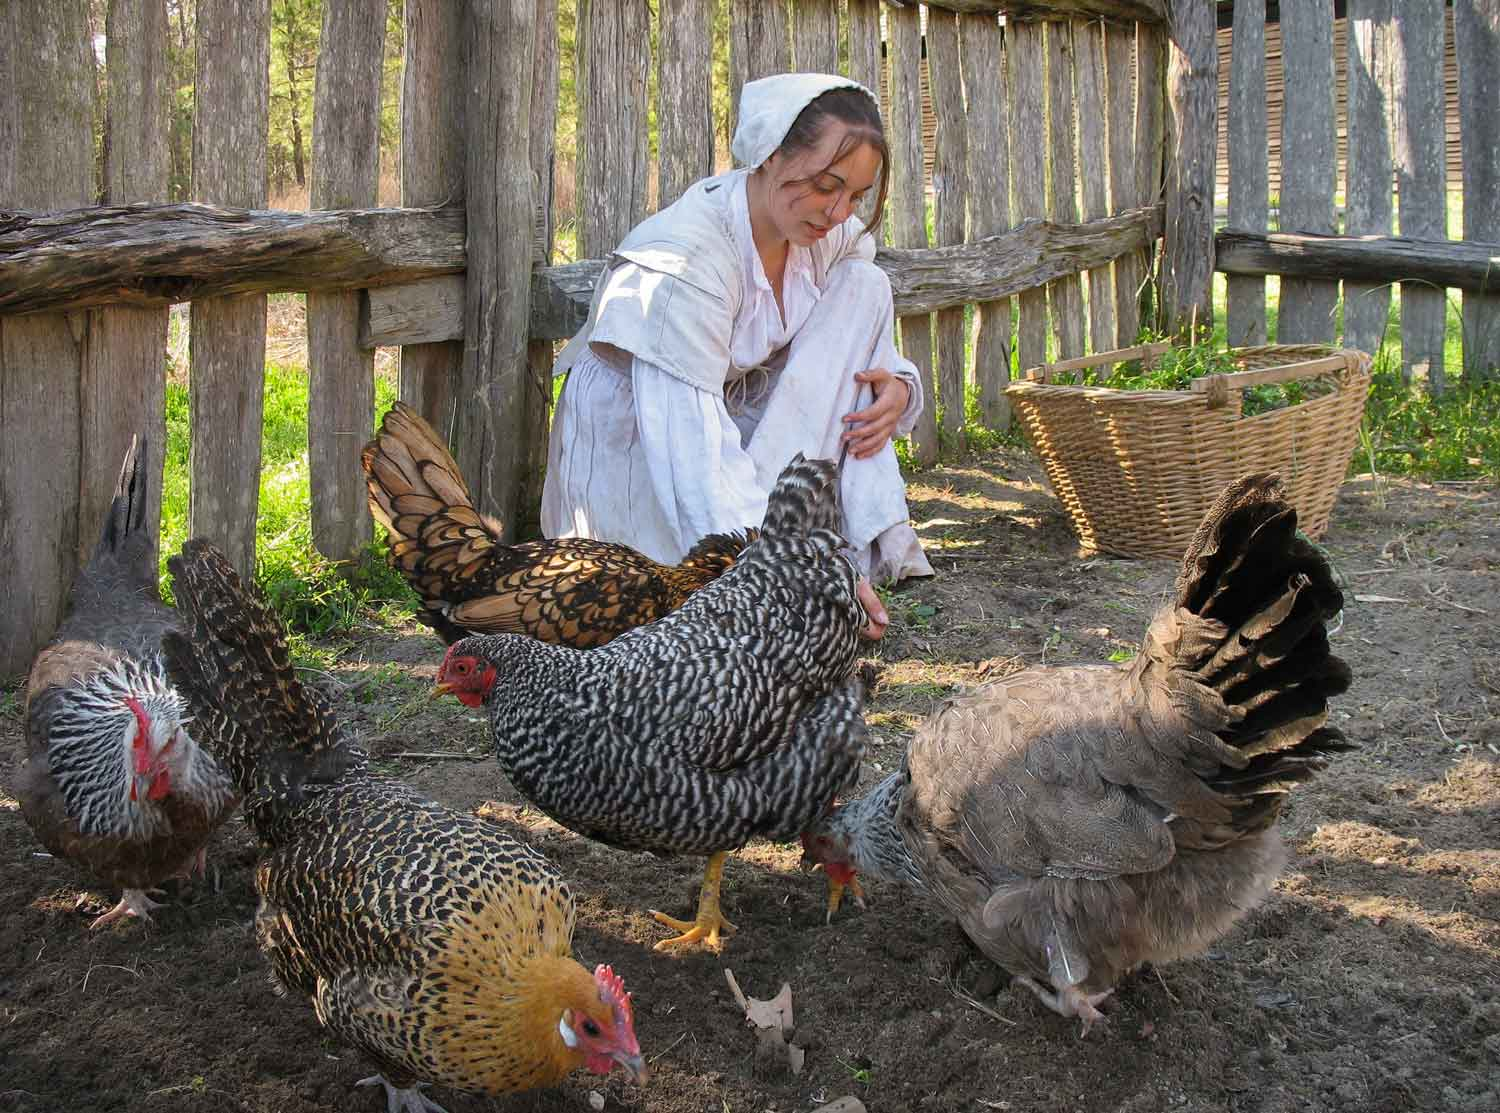 Heritage breed chickens wander freely at the plantation